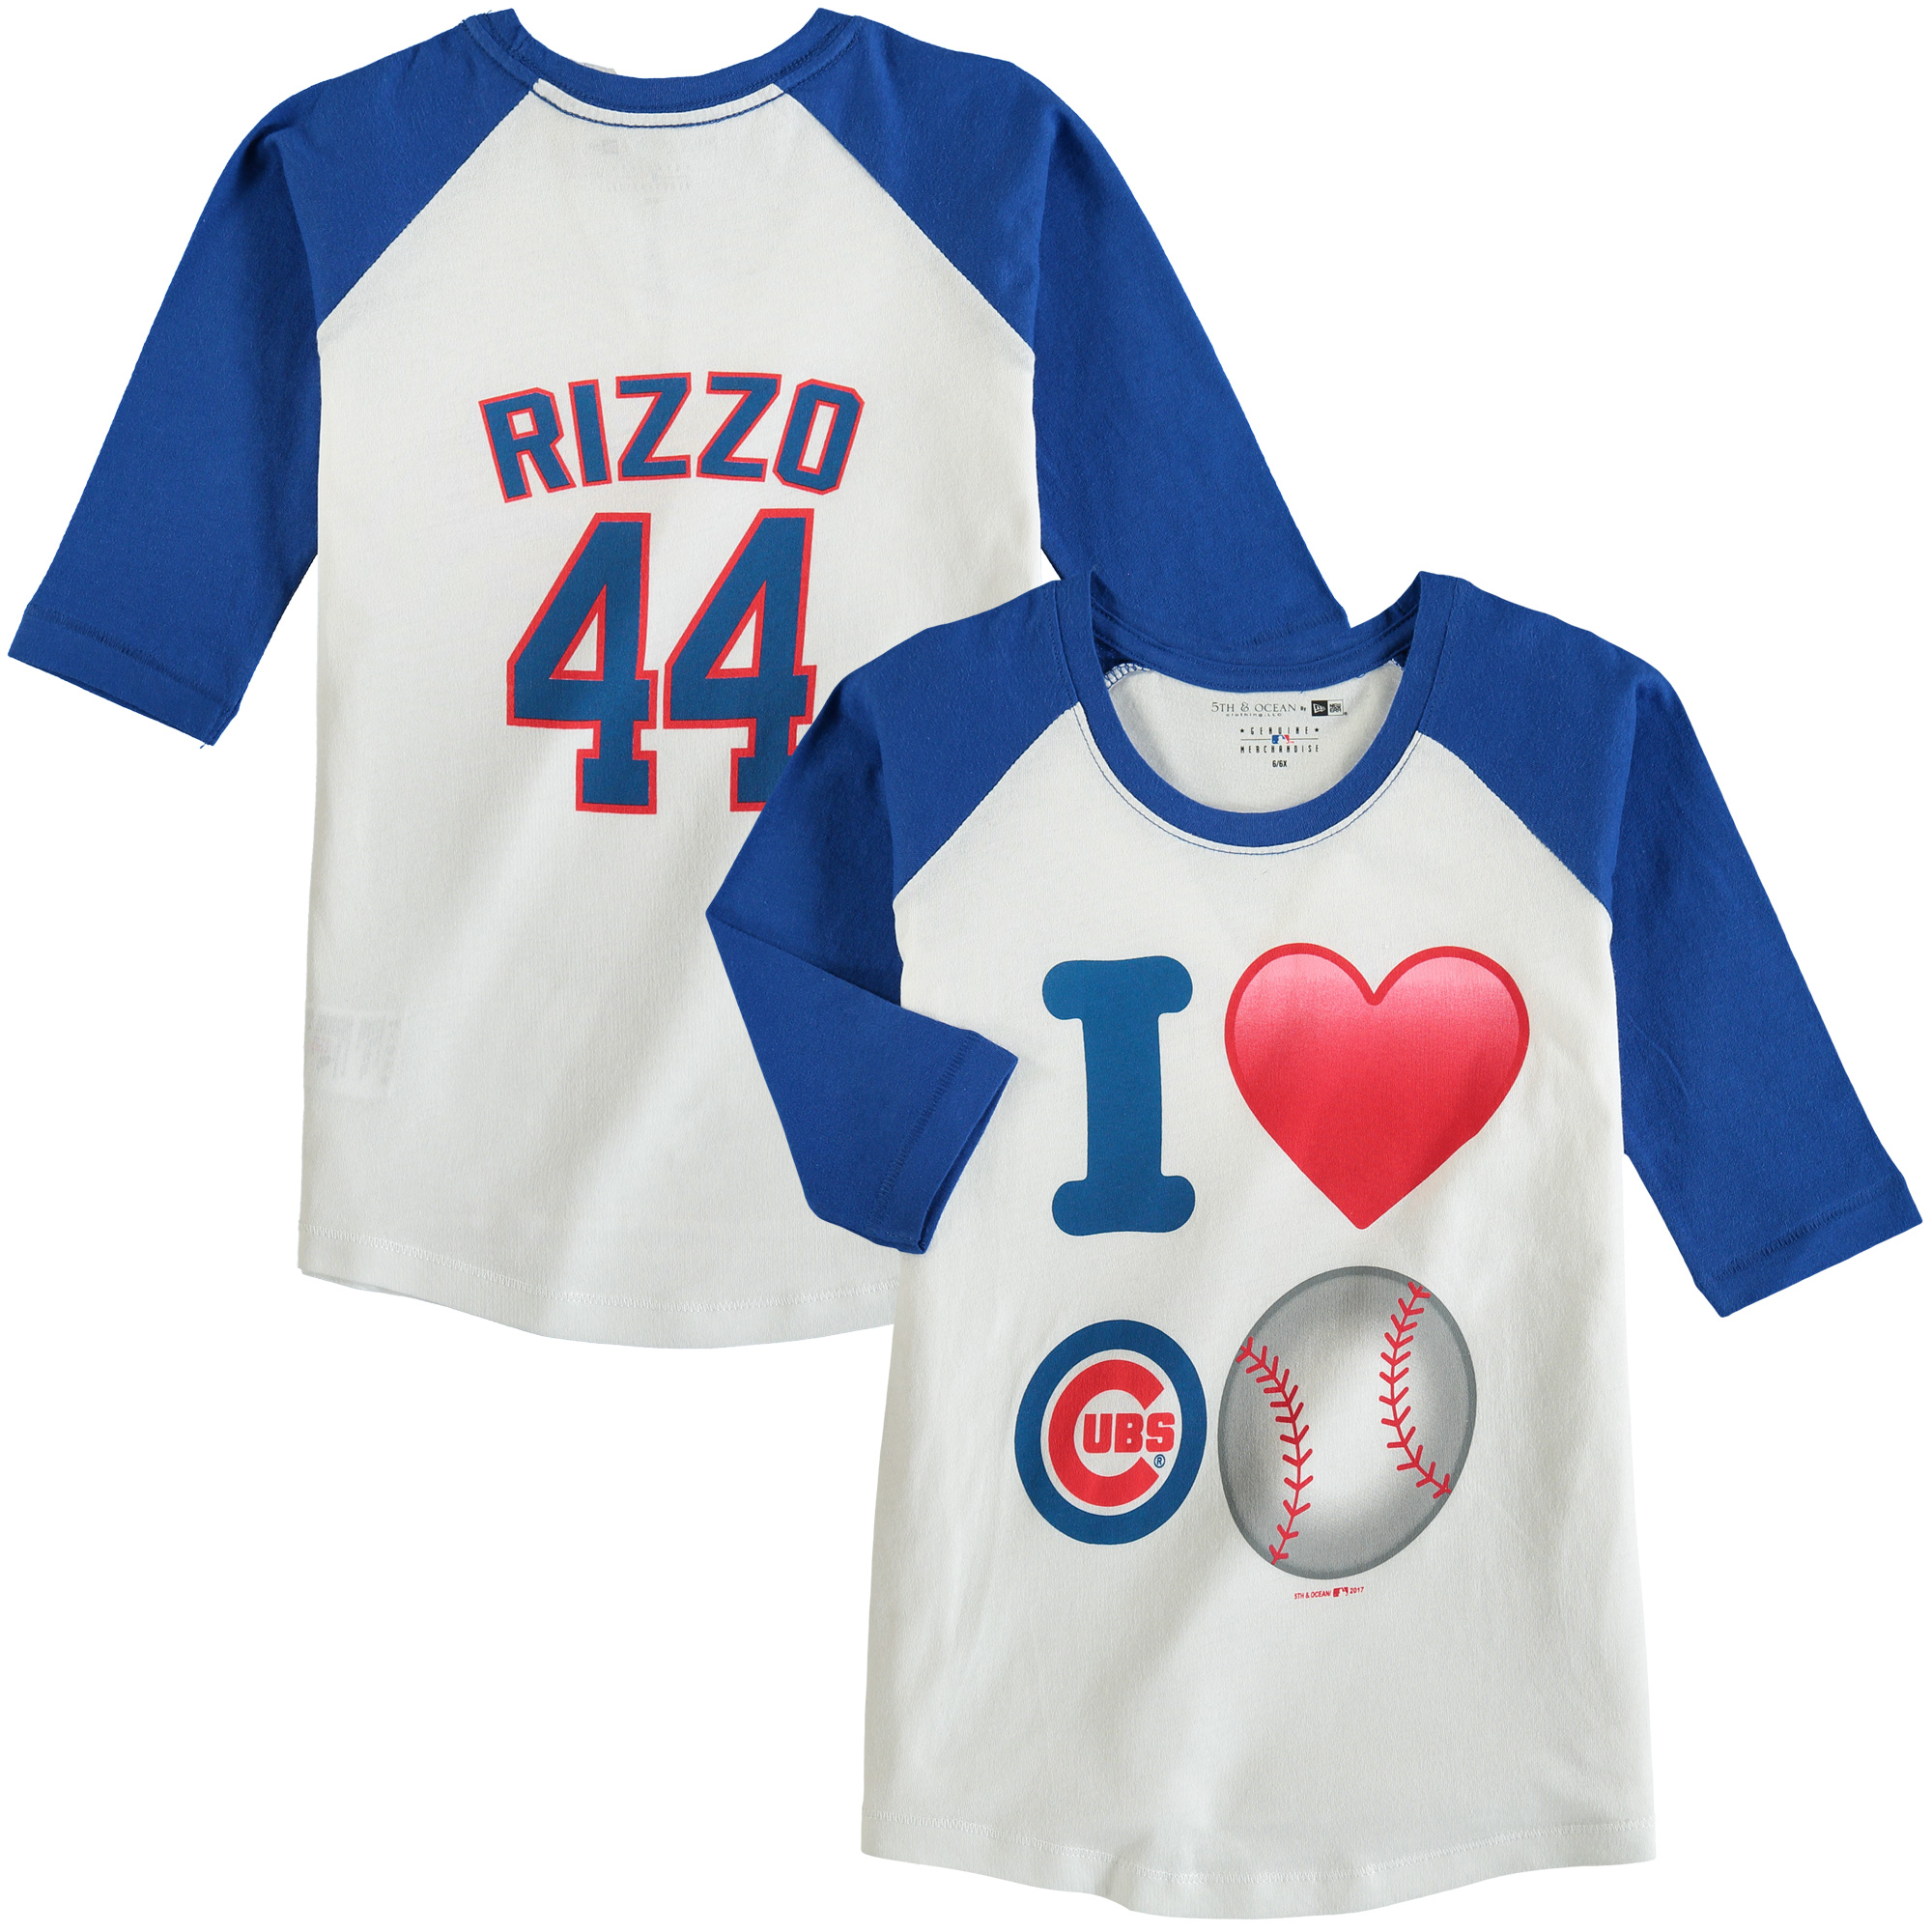 Anthony Rizzo Chicago Cubs 5th & Ocean by New Era Girls Youth Emoji Love Player Name & Number 3/4-Sleeve Raglan T-Shirt - White/Royal